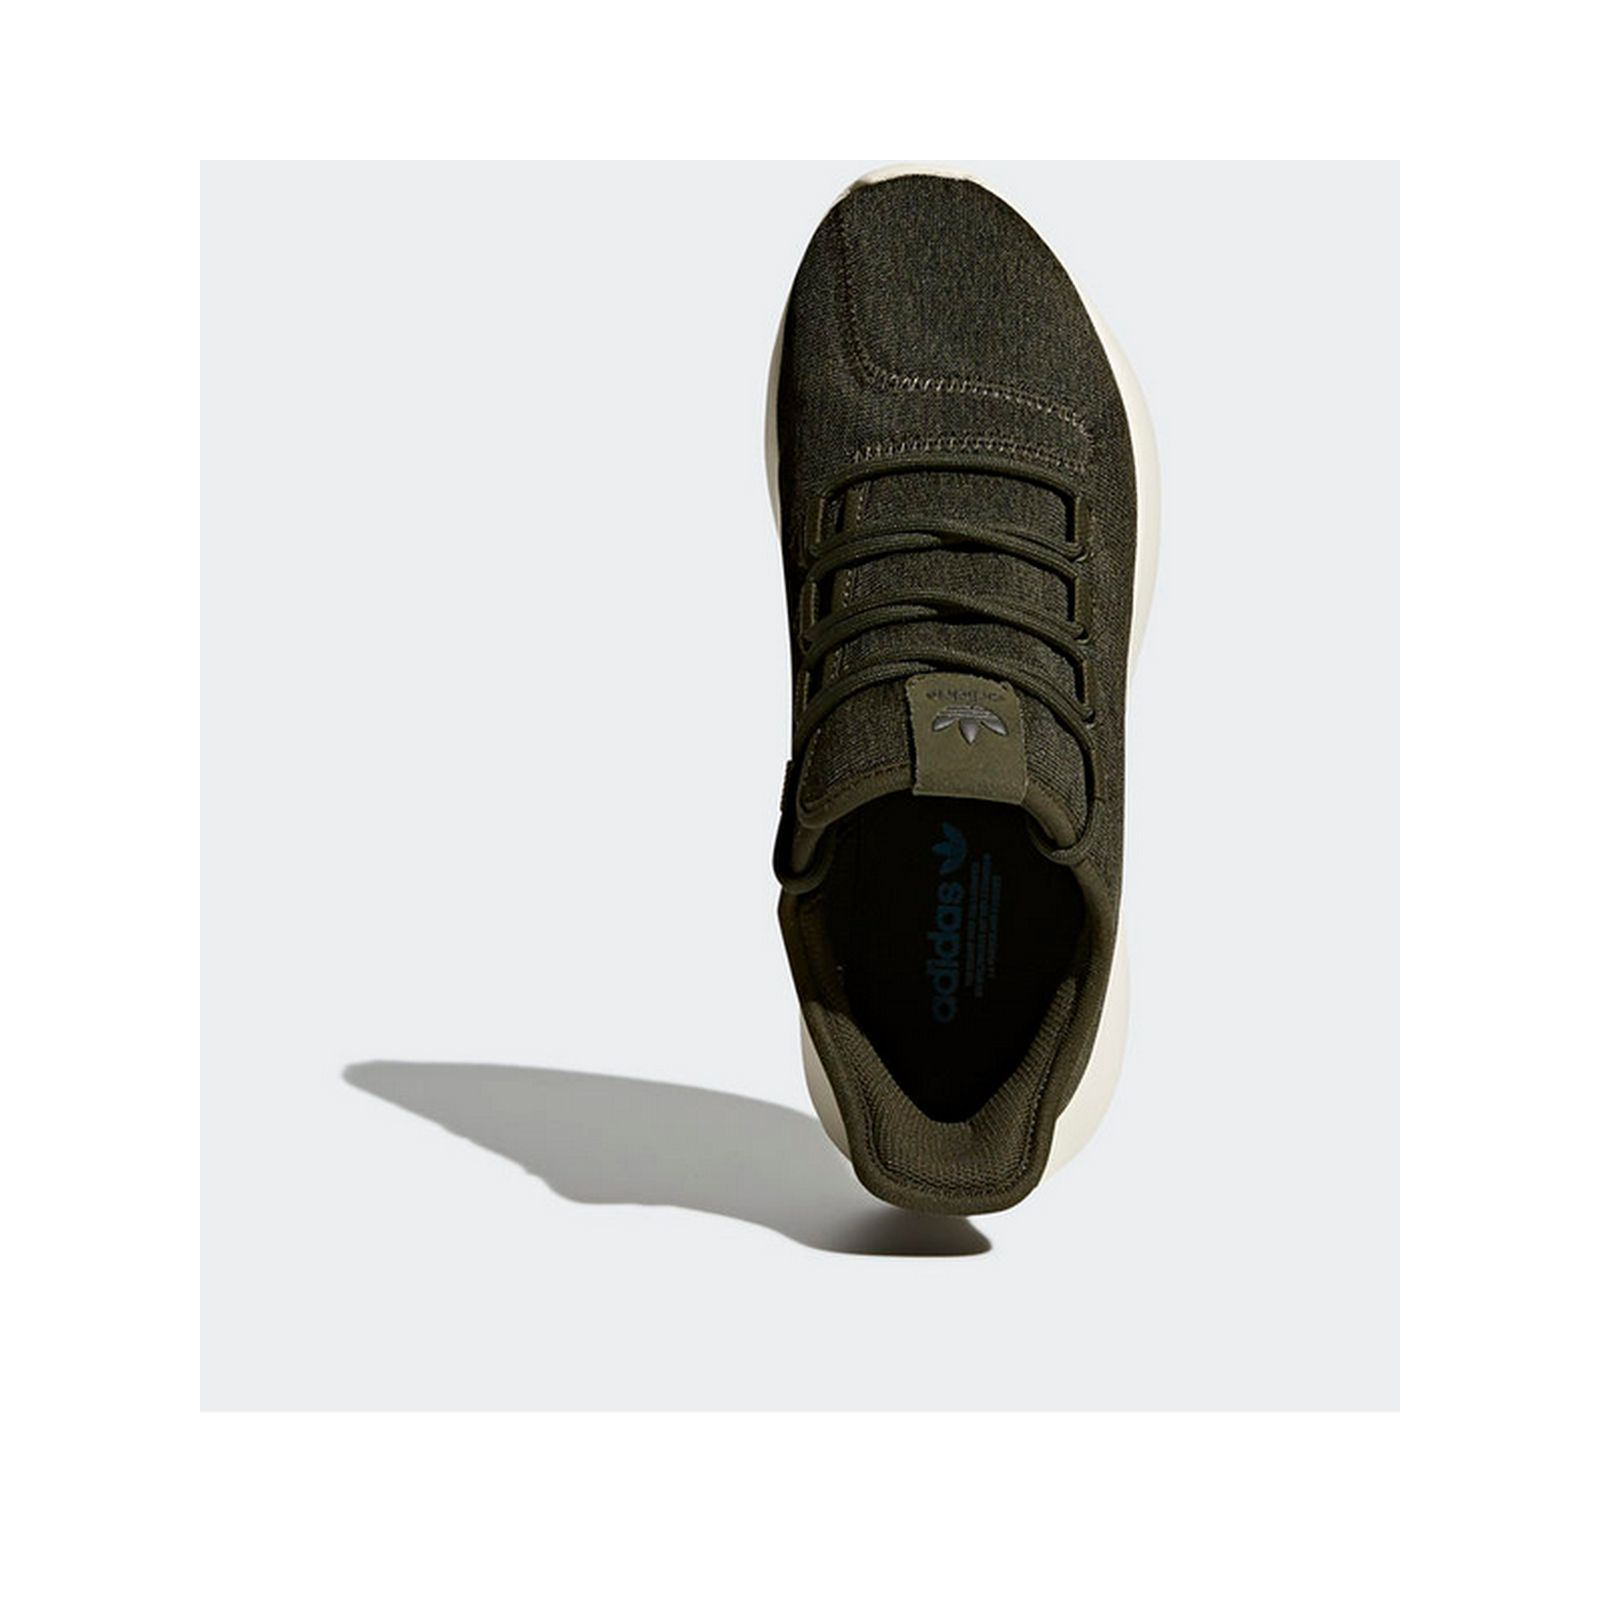 premium selection 7a7b9 d5f24 ADIDAS ORIGINALS Tubular-shadow - Baskets basses - kaki